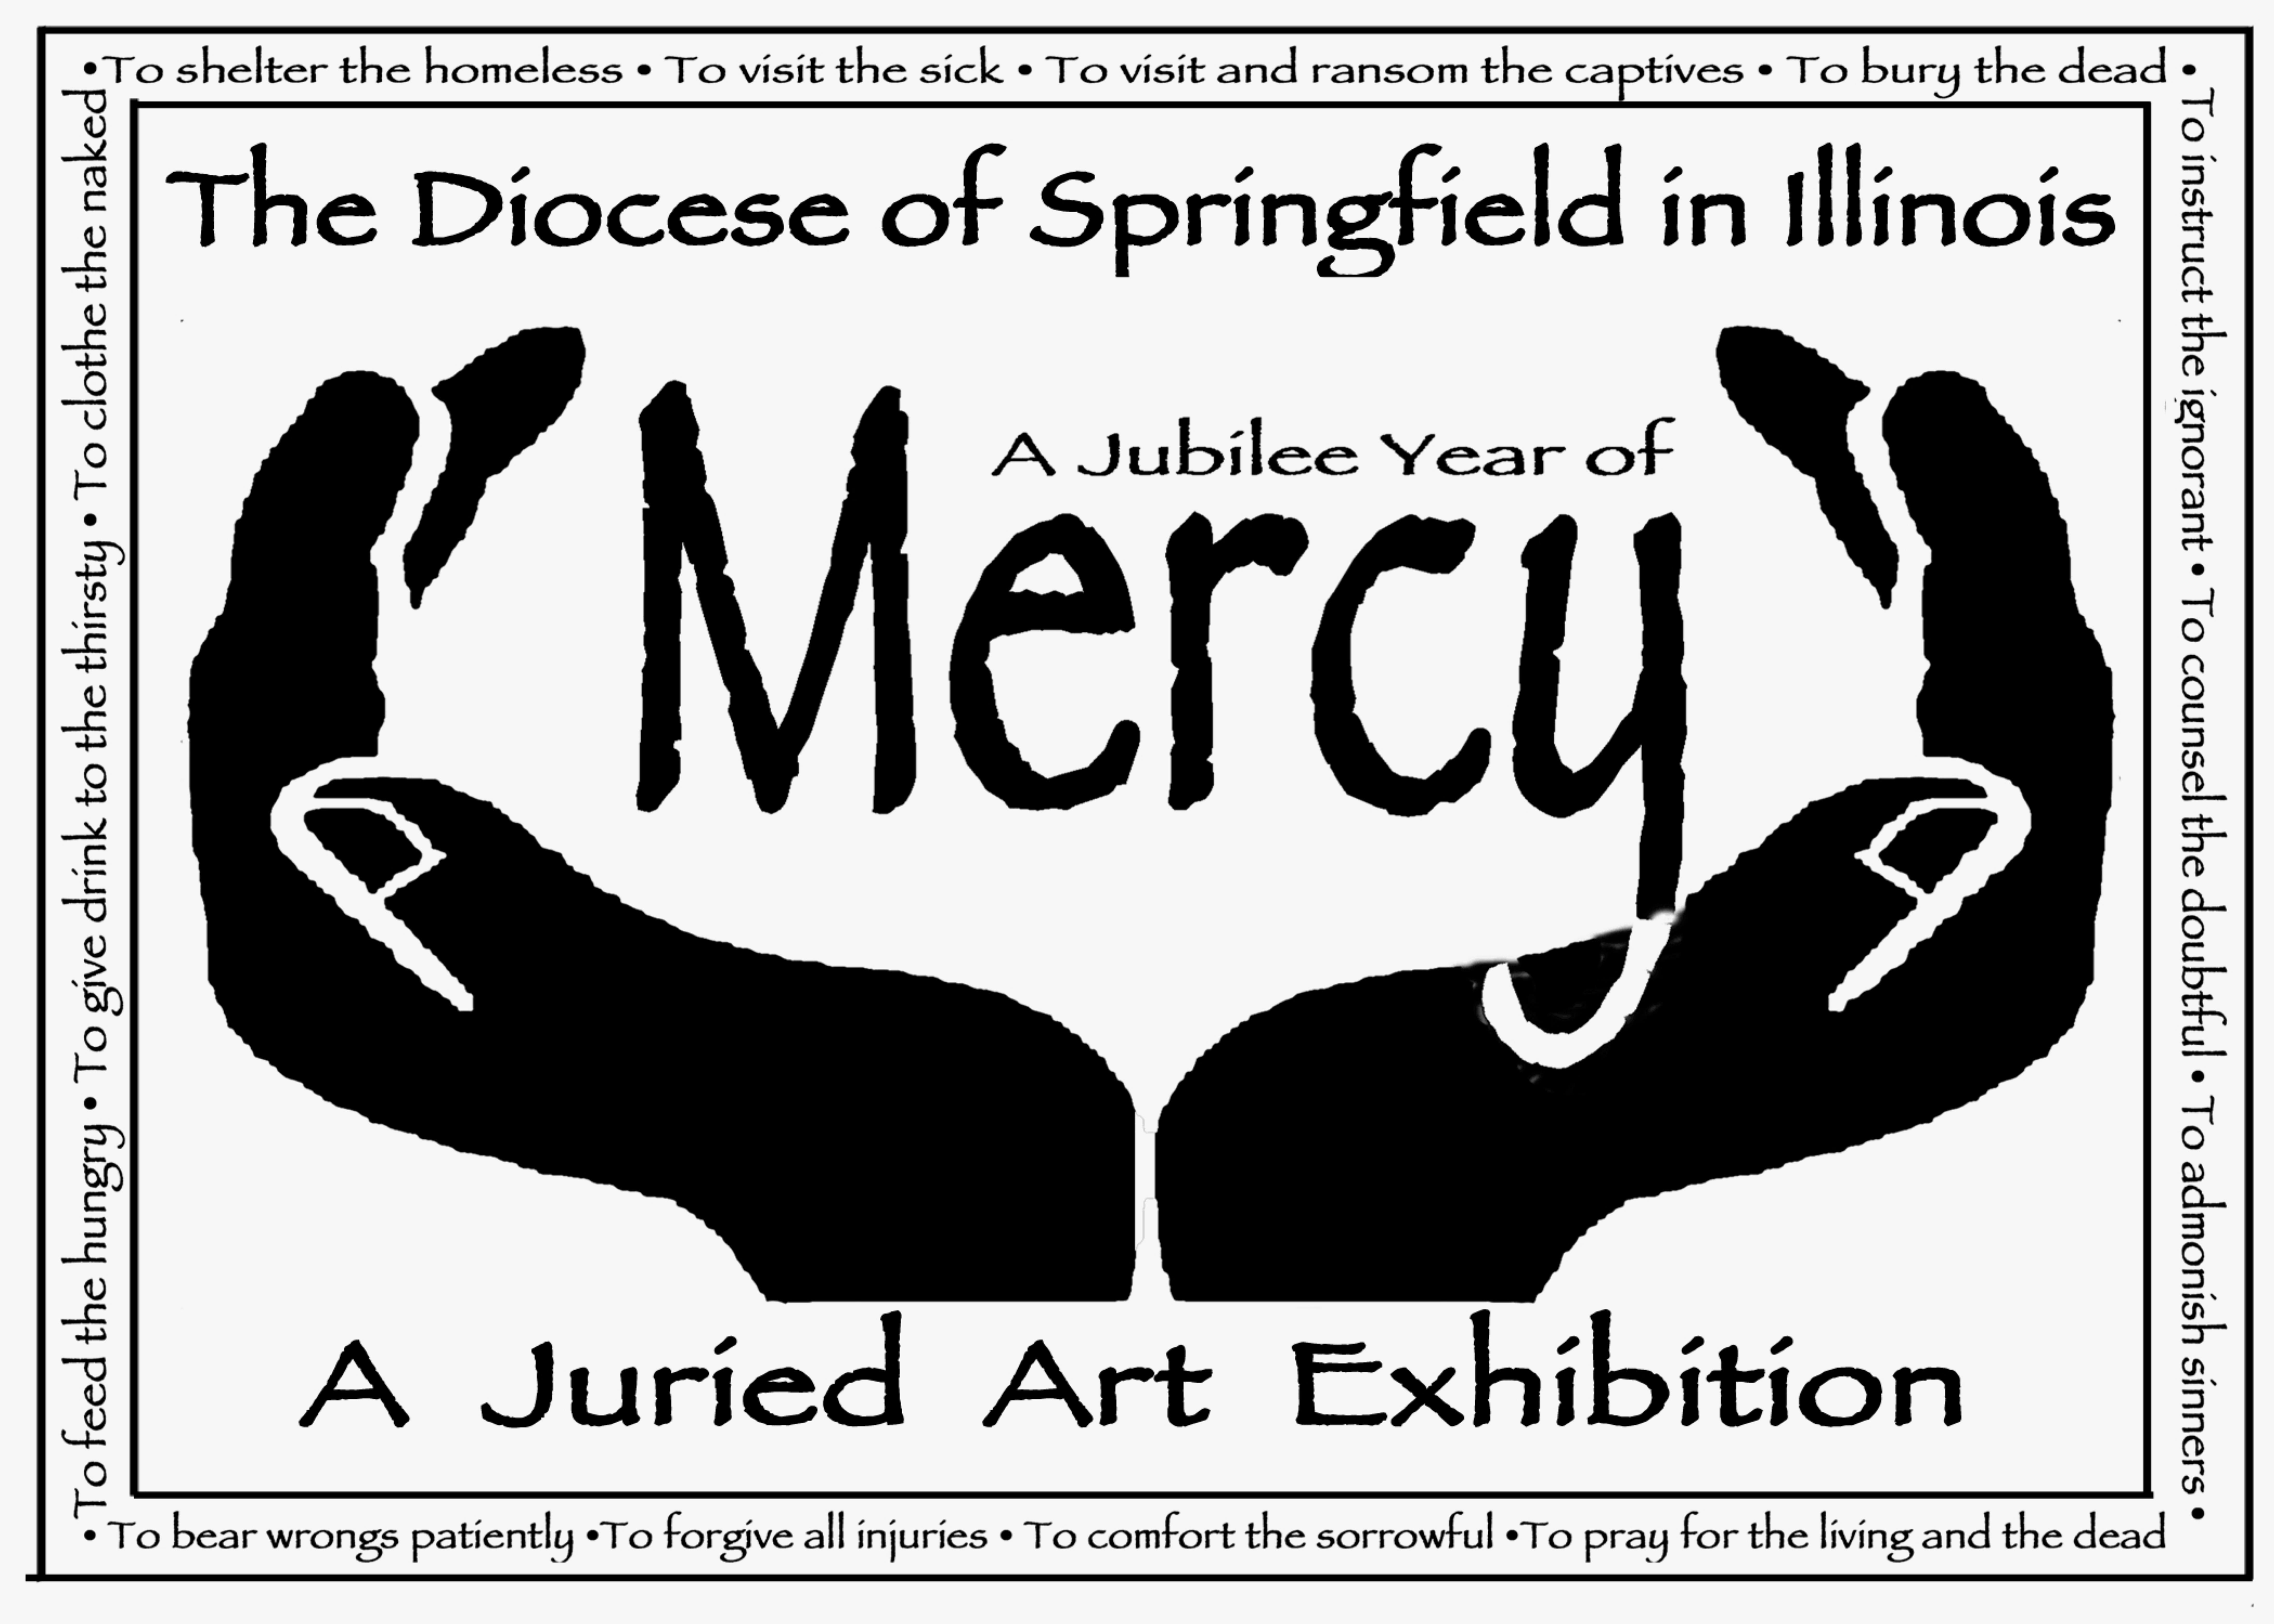 year of mercy art exhibition logo